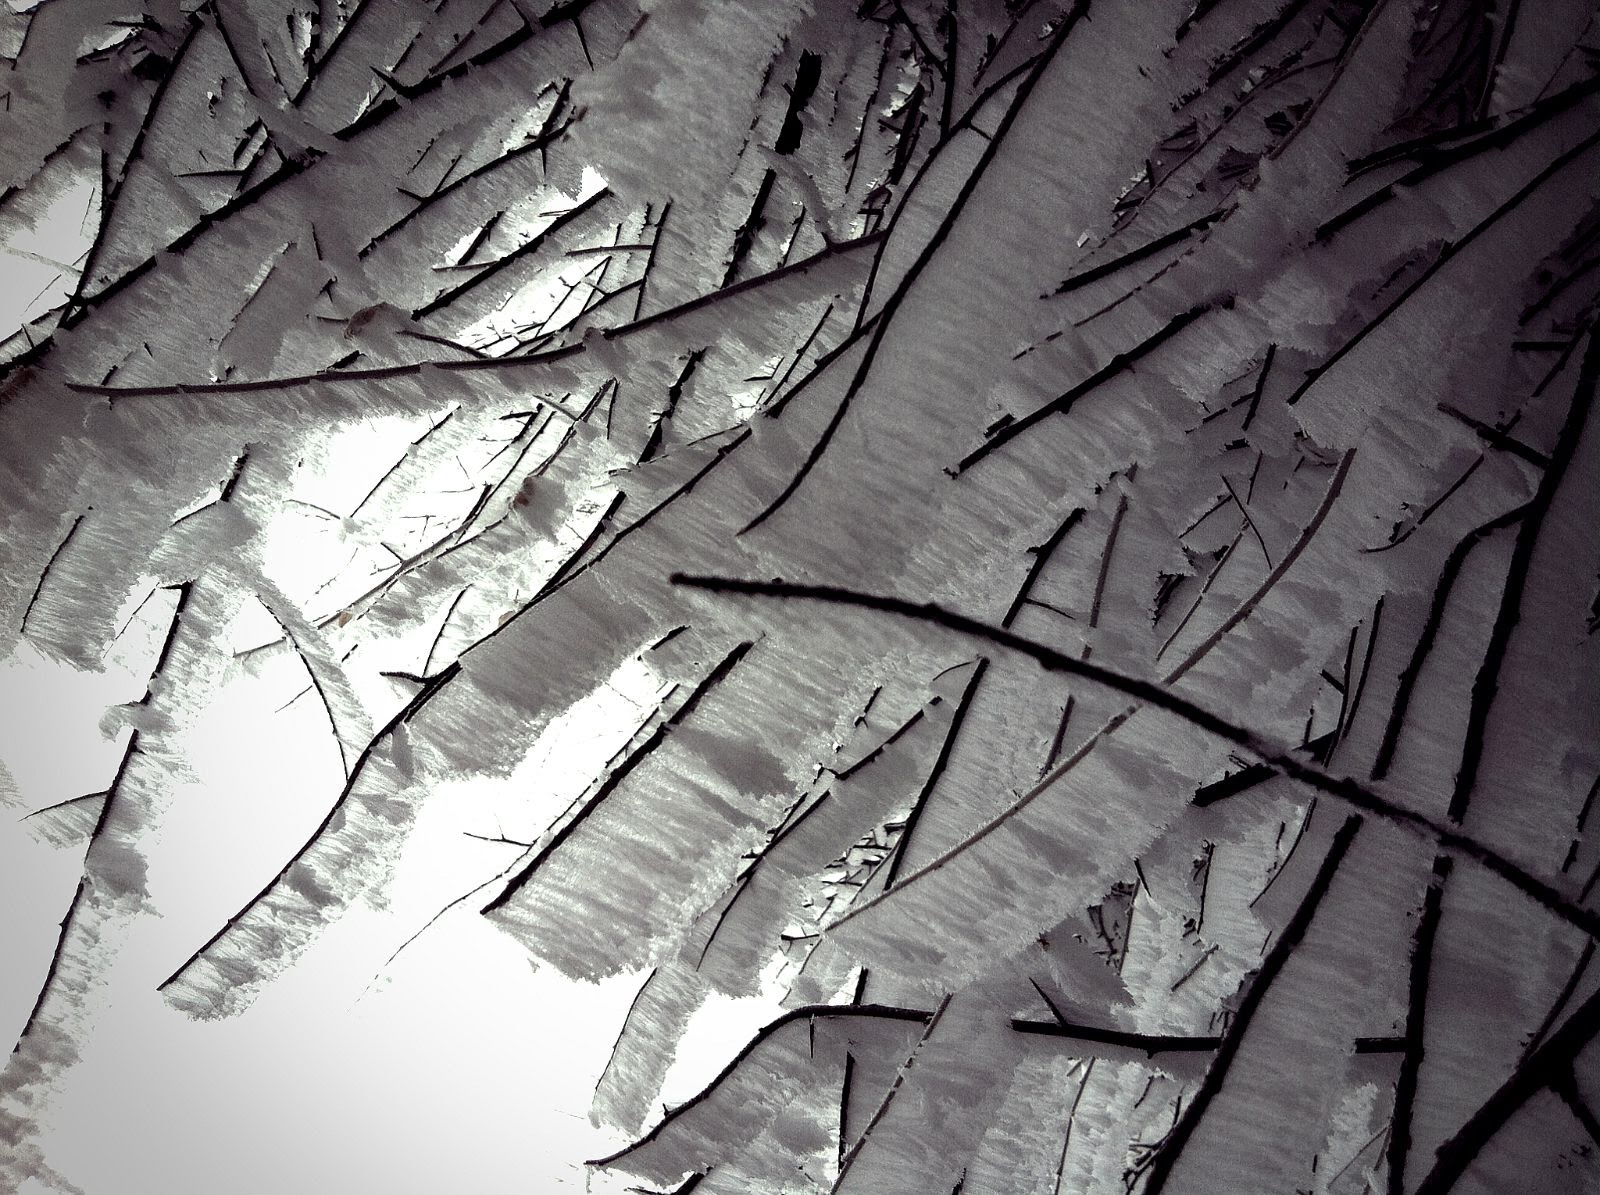 Frosted Stems, photo by Lorie Klahn (c)